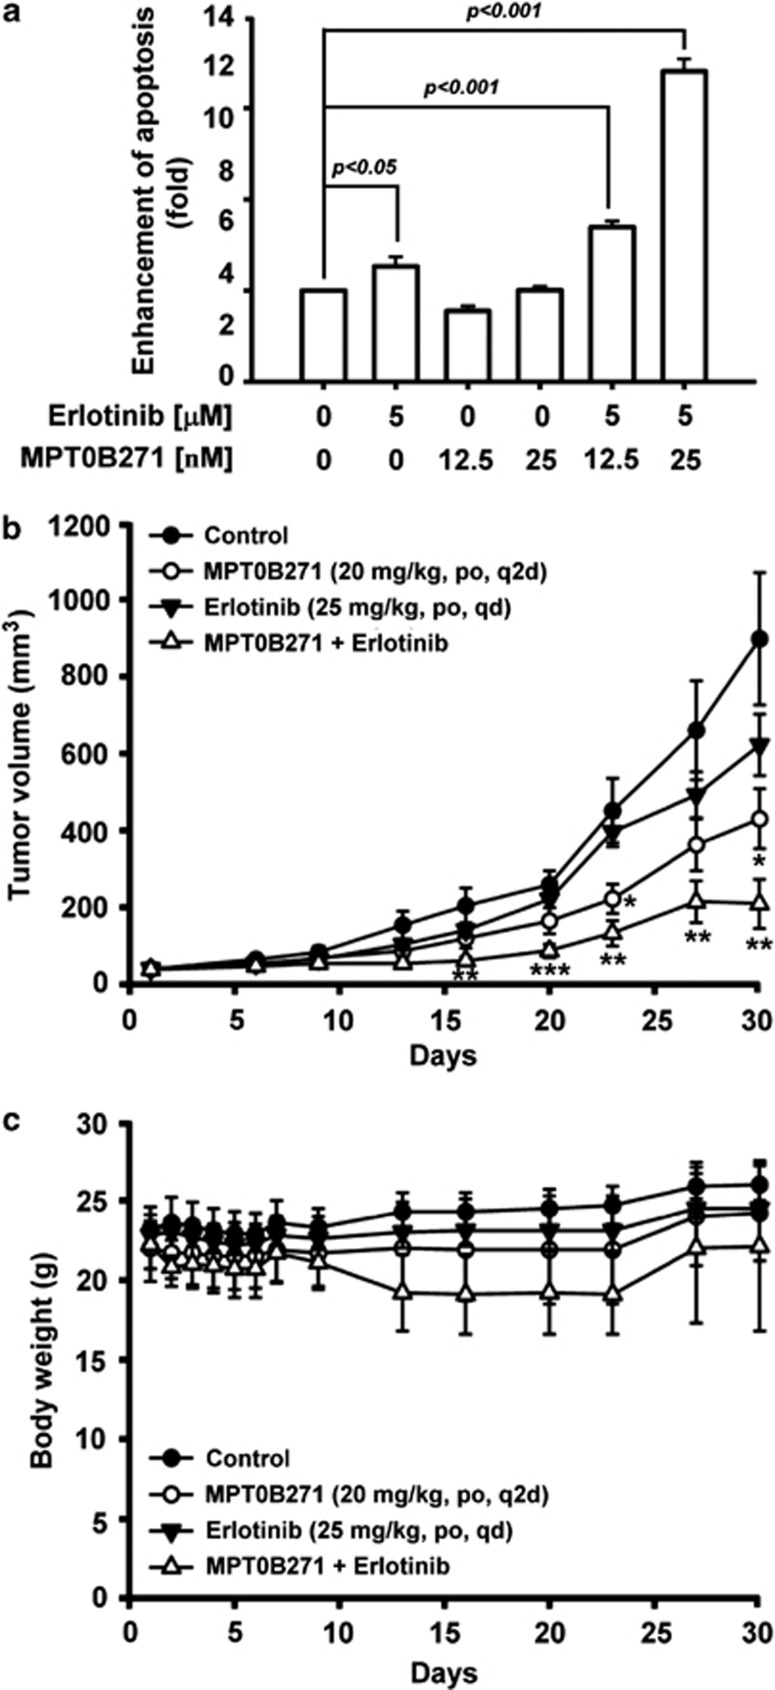 In vitro and in vivo antitumor activity of MPT0B271 in combination with erlotinib. ( a ) A549 cells were treated with erlotinib (5 μ M) in combination with MPT0B271 (0.0125 or 0.025 μ M) for 48 h, and cell apoptosis was measured using the Cell Death ELISA PLUS kit. Data are expressed as the mean±S.E. of at least three independent determinations. ( b ) A549 xenograft model. A549-tumor-bearing nude mice were treated with vehicle, MPT0B271 (20 mg/kg/day by oral gavage q2d), erlotinib (25 mg/kg/day by oral gavage once a day), or MPT0B271 in combination with erlotinib. Tumor was excised when the tumor size reached 1200 mm 3 . ( c ) The body weight of the mice measured daily during the first week and then at the days of administration. * P